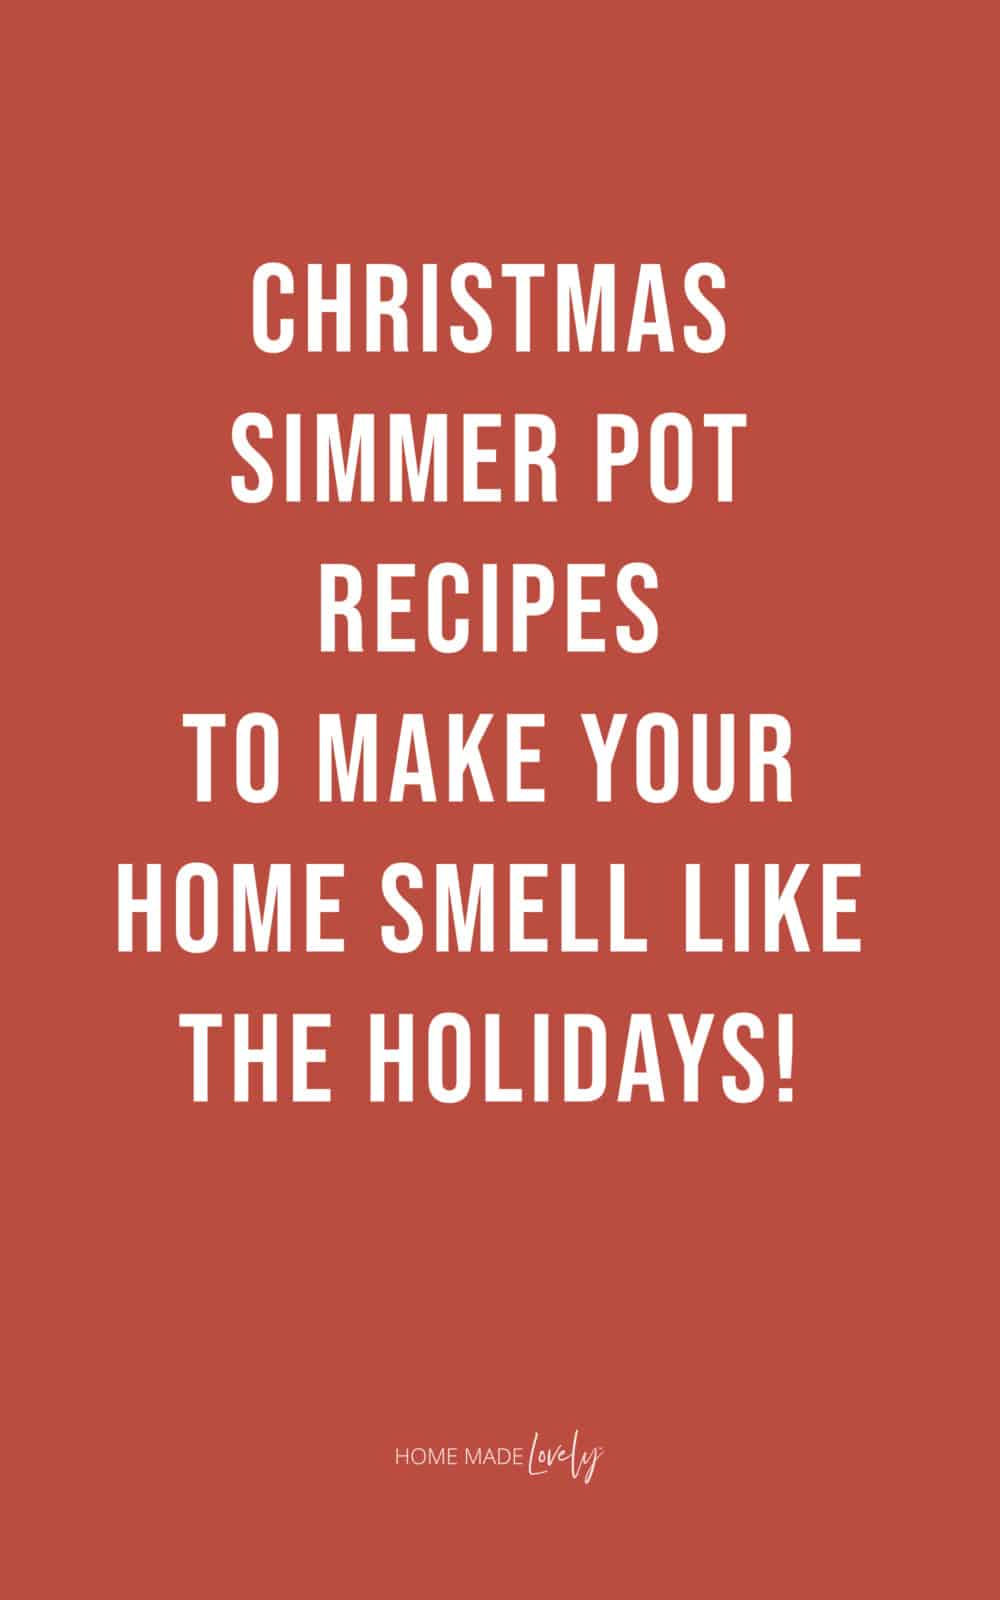 Christmas simmer pot recipes text over dark red background